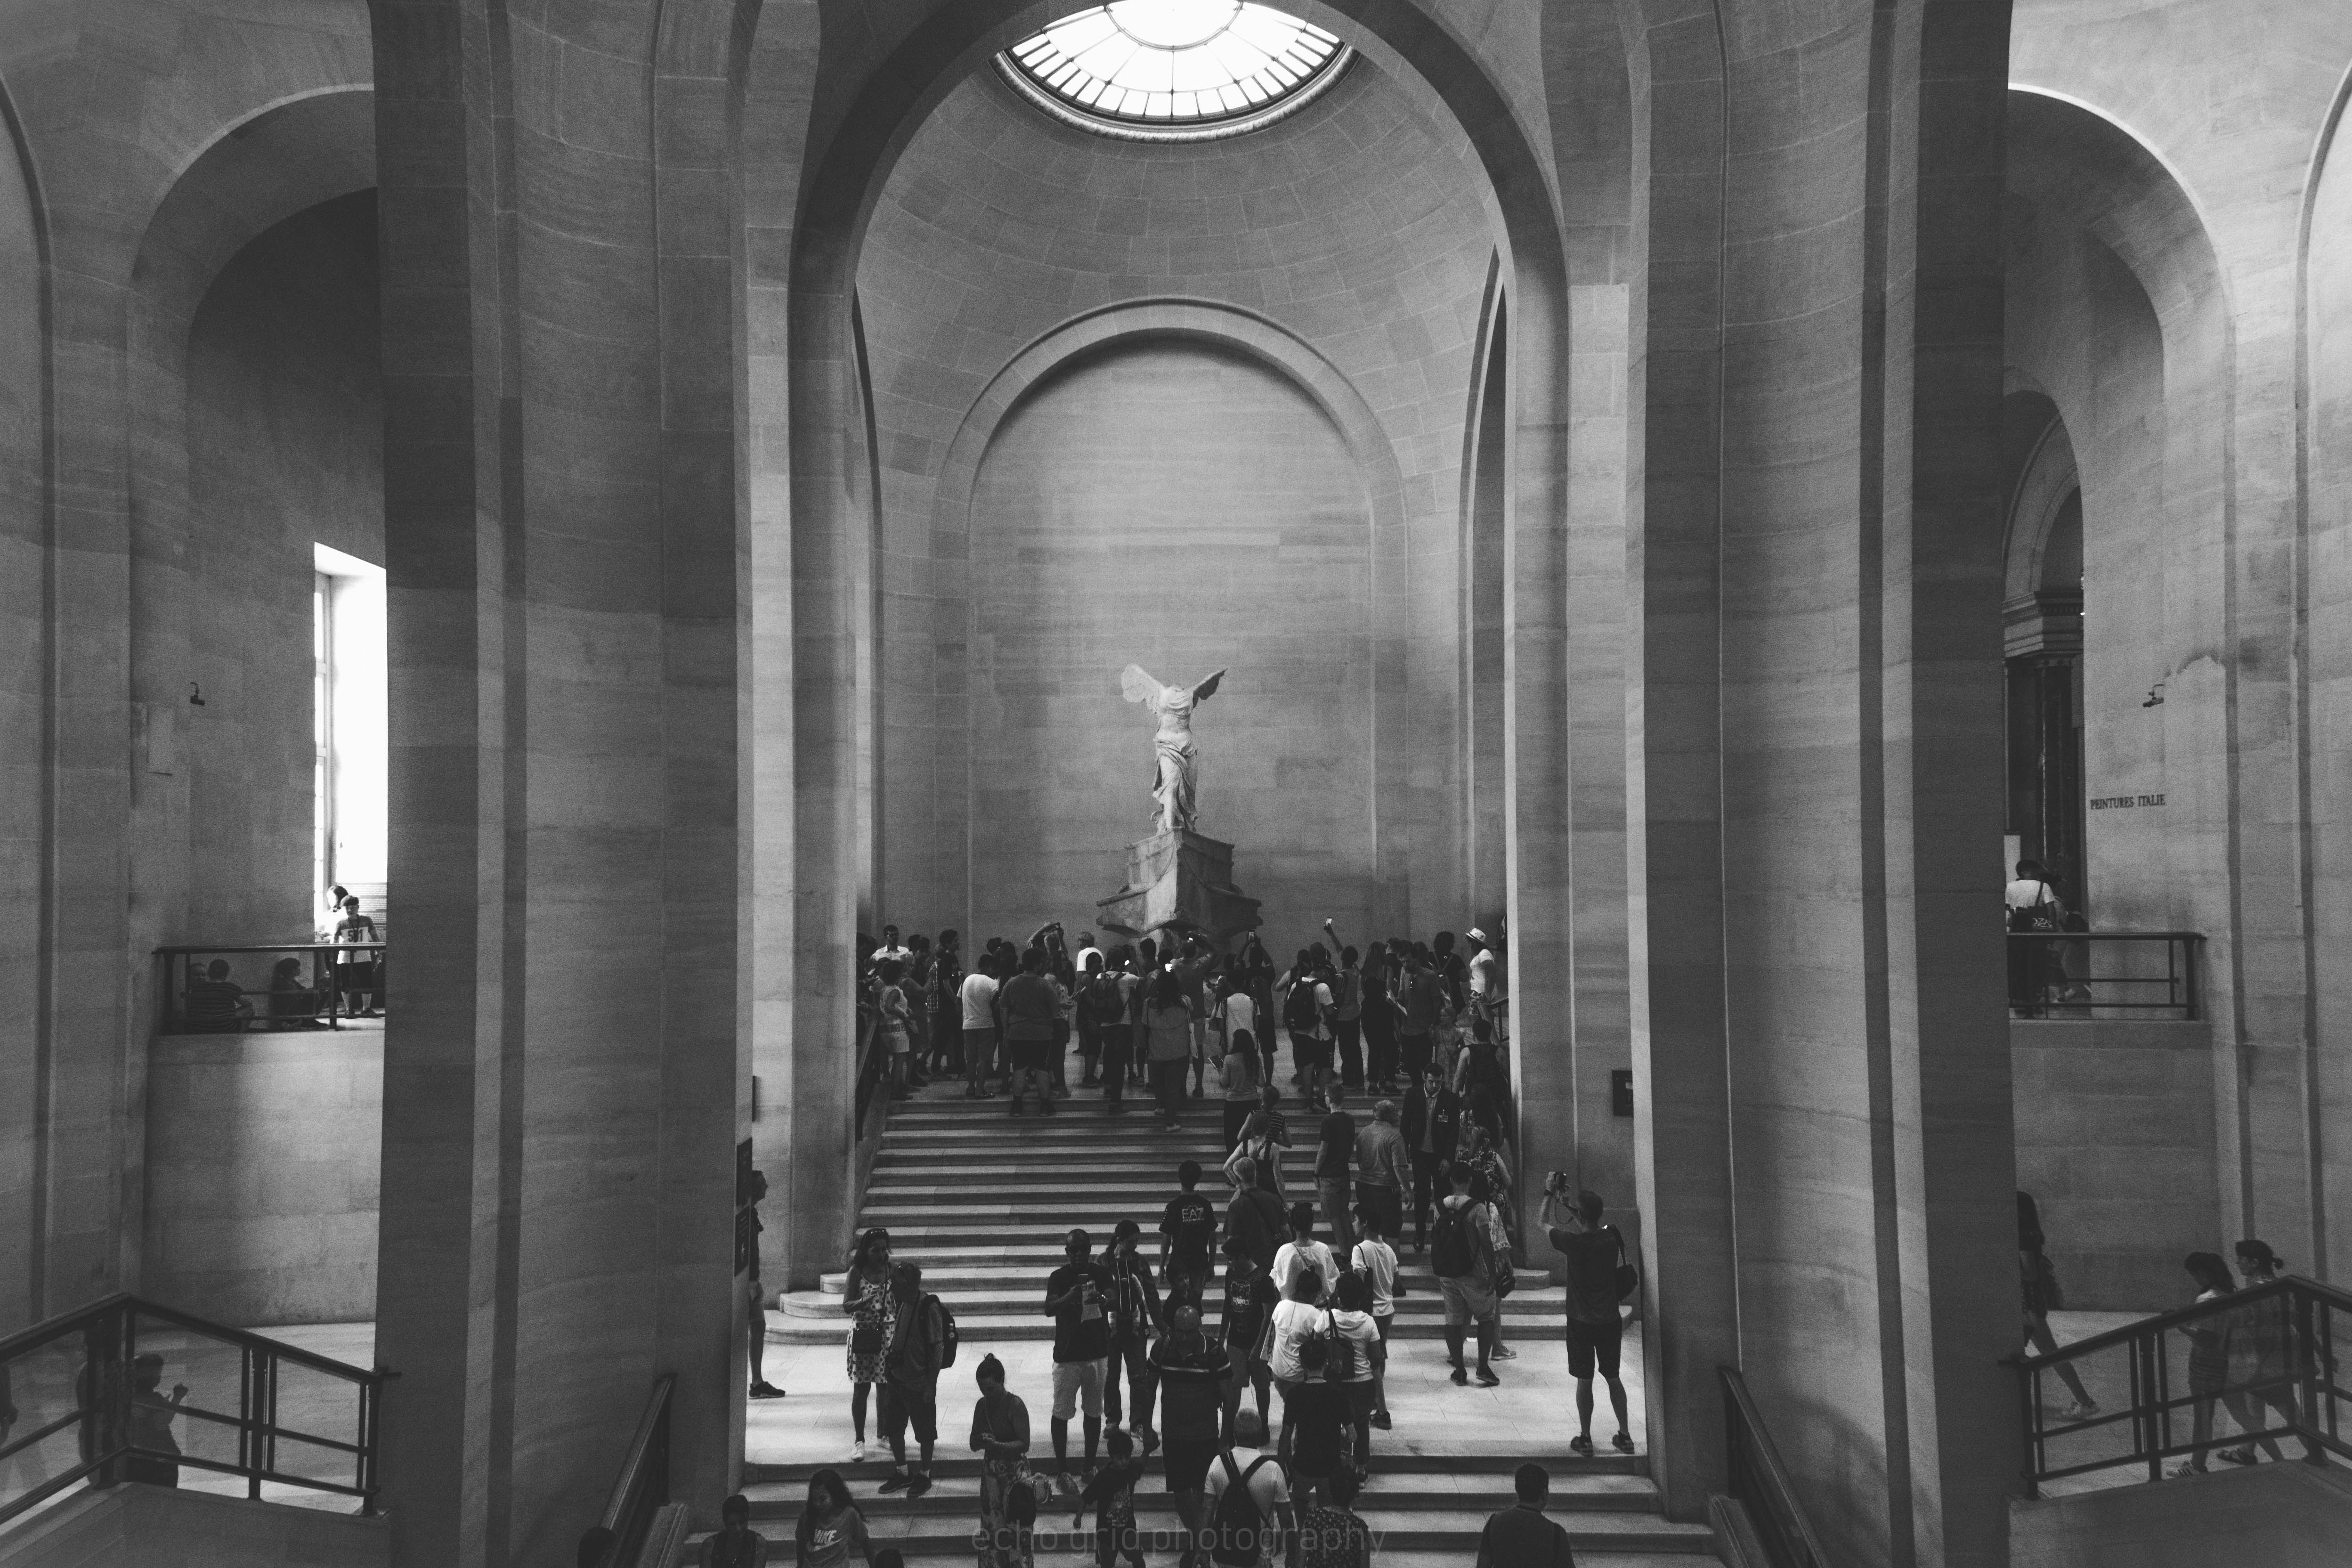 grayscale photo of people walking up the stairs inside building